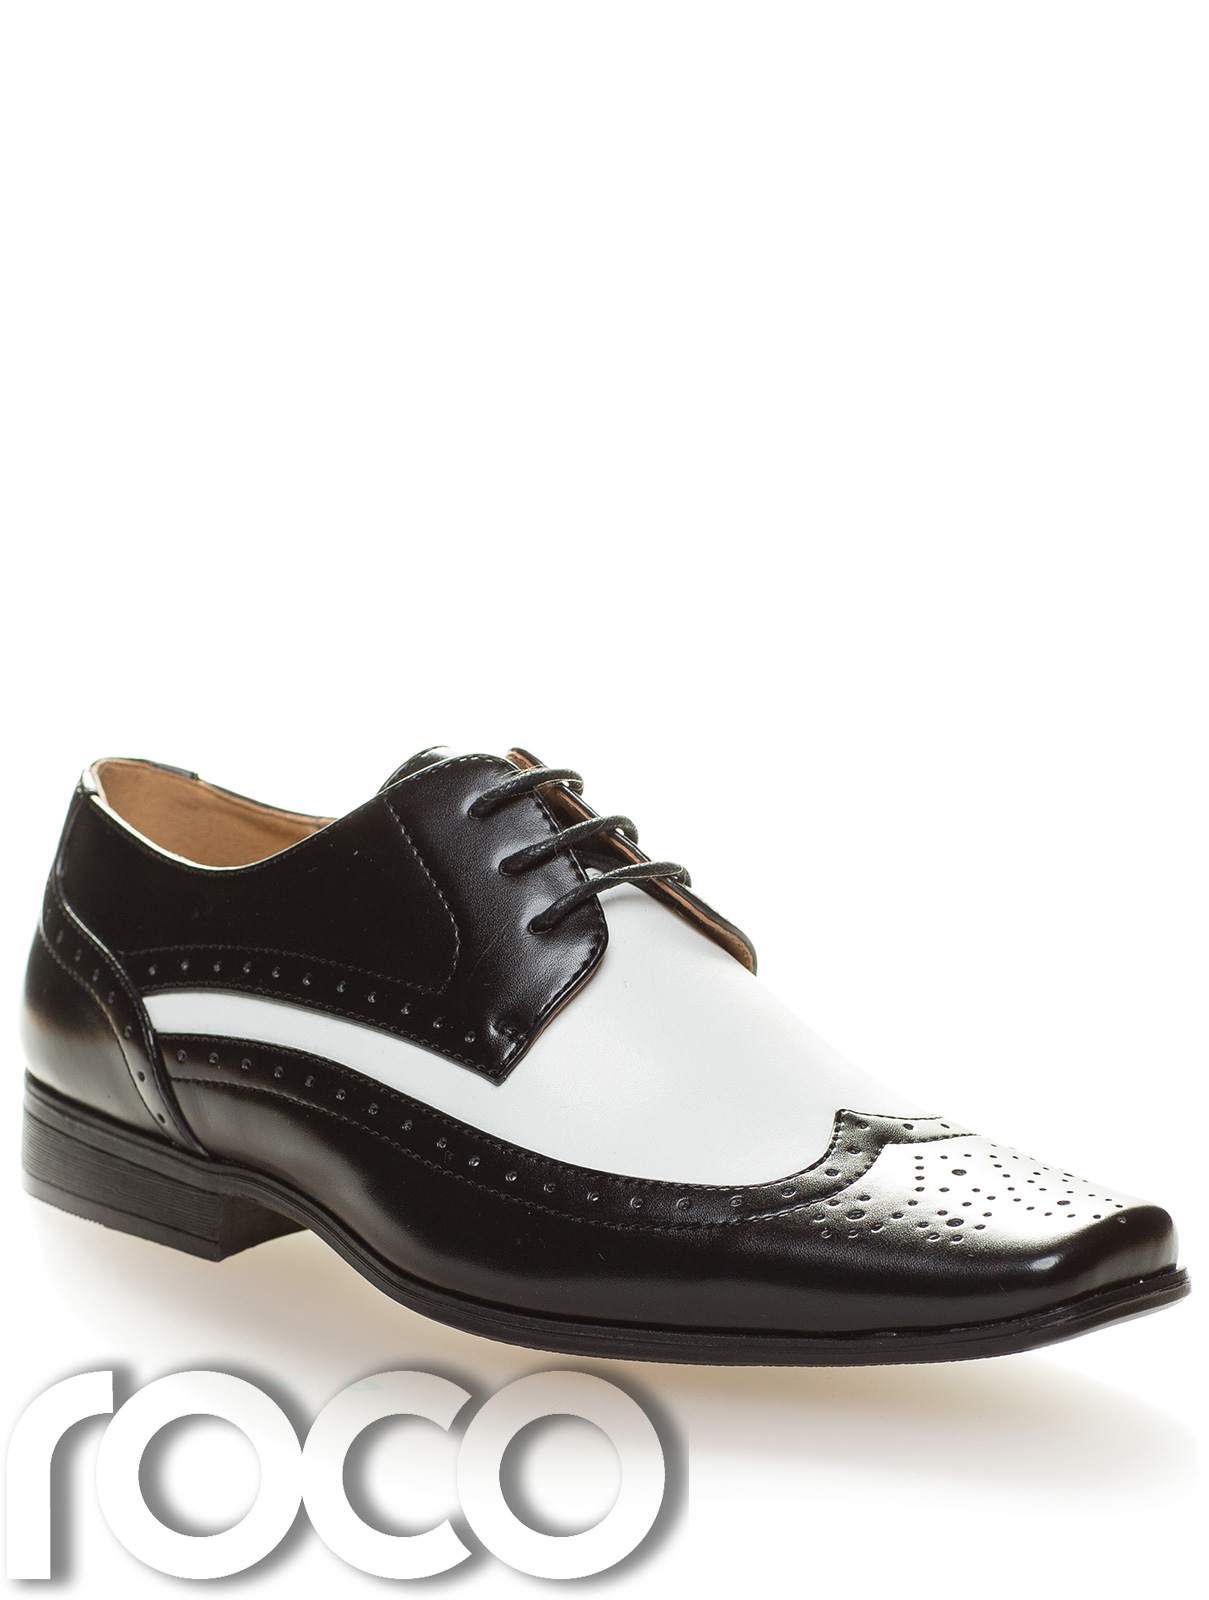 boys dress shoes boys jazz shoes boys black white shoes bugsy malone shoes